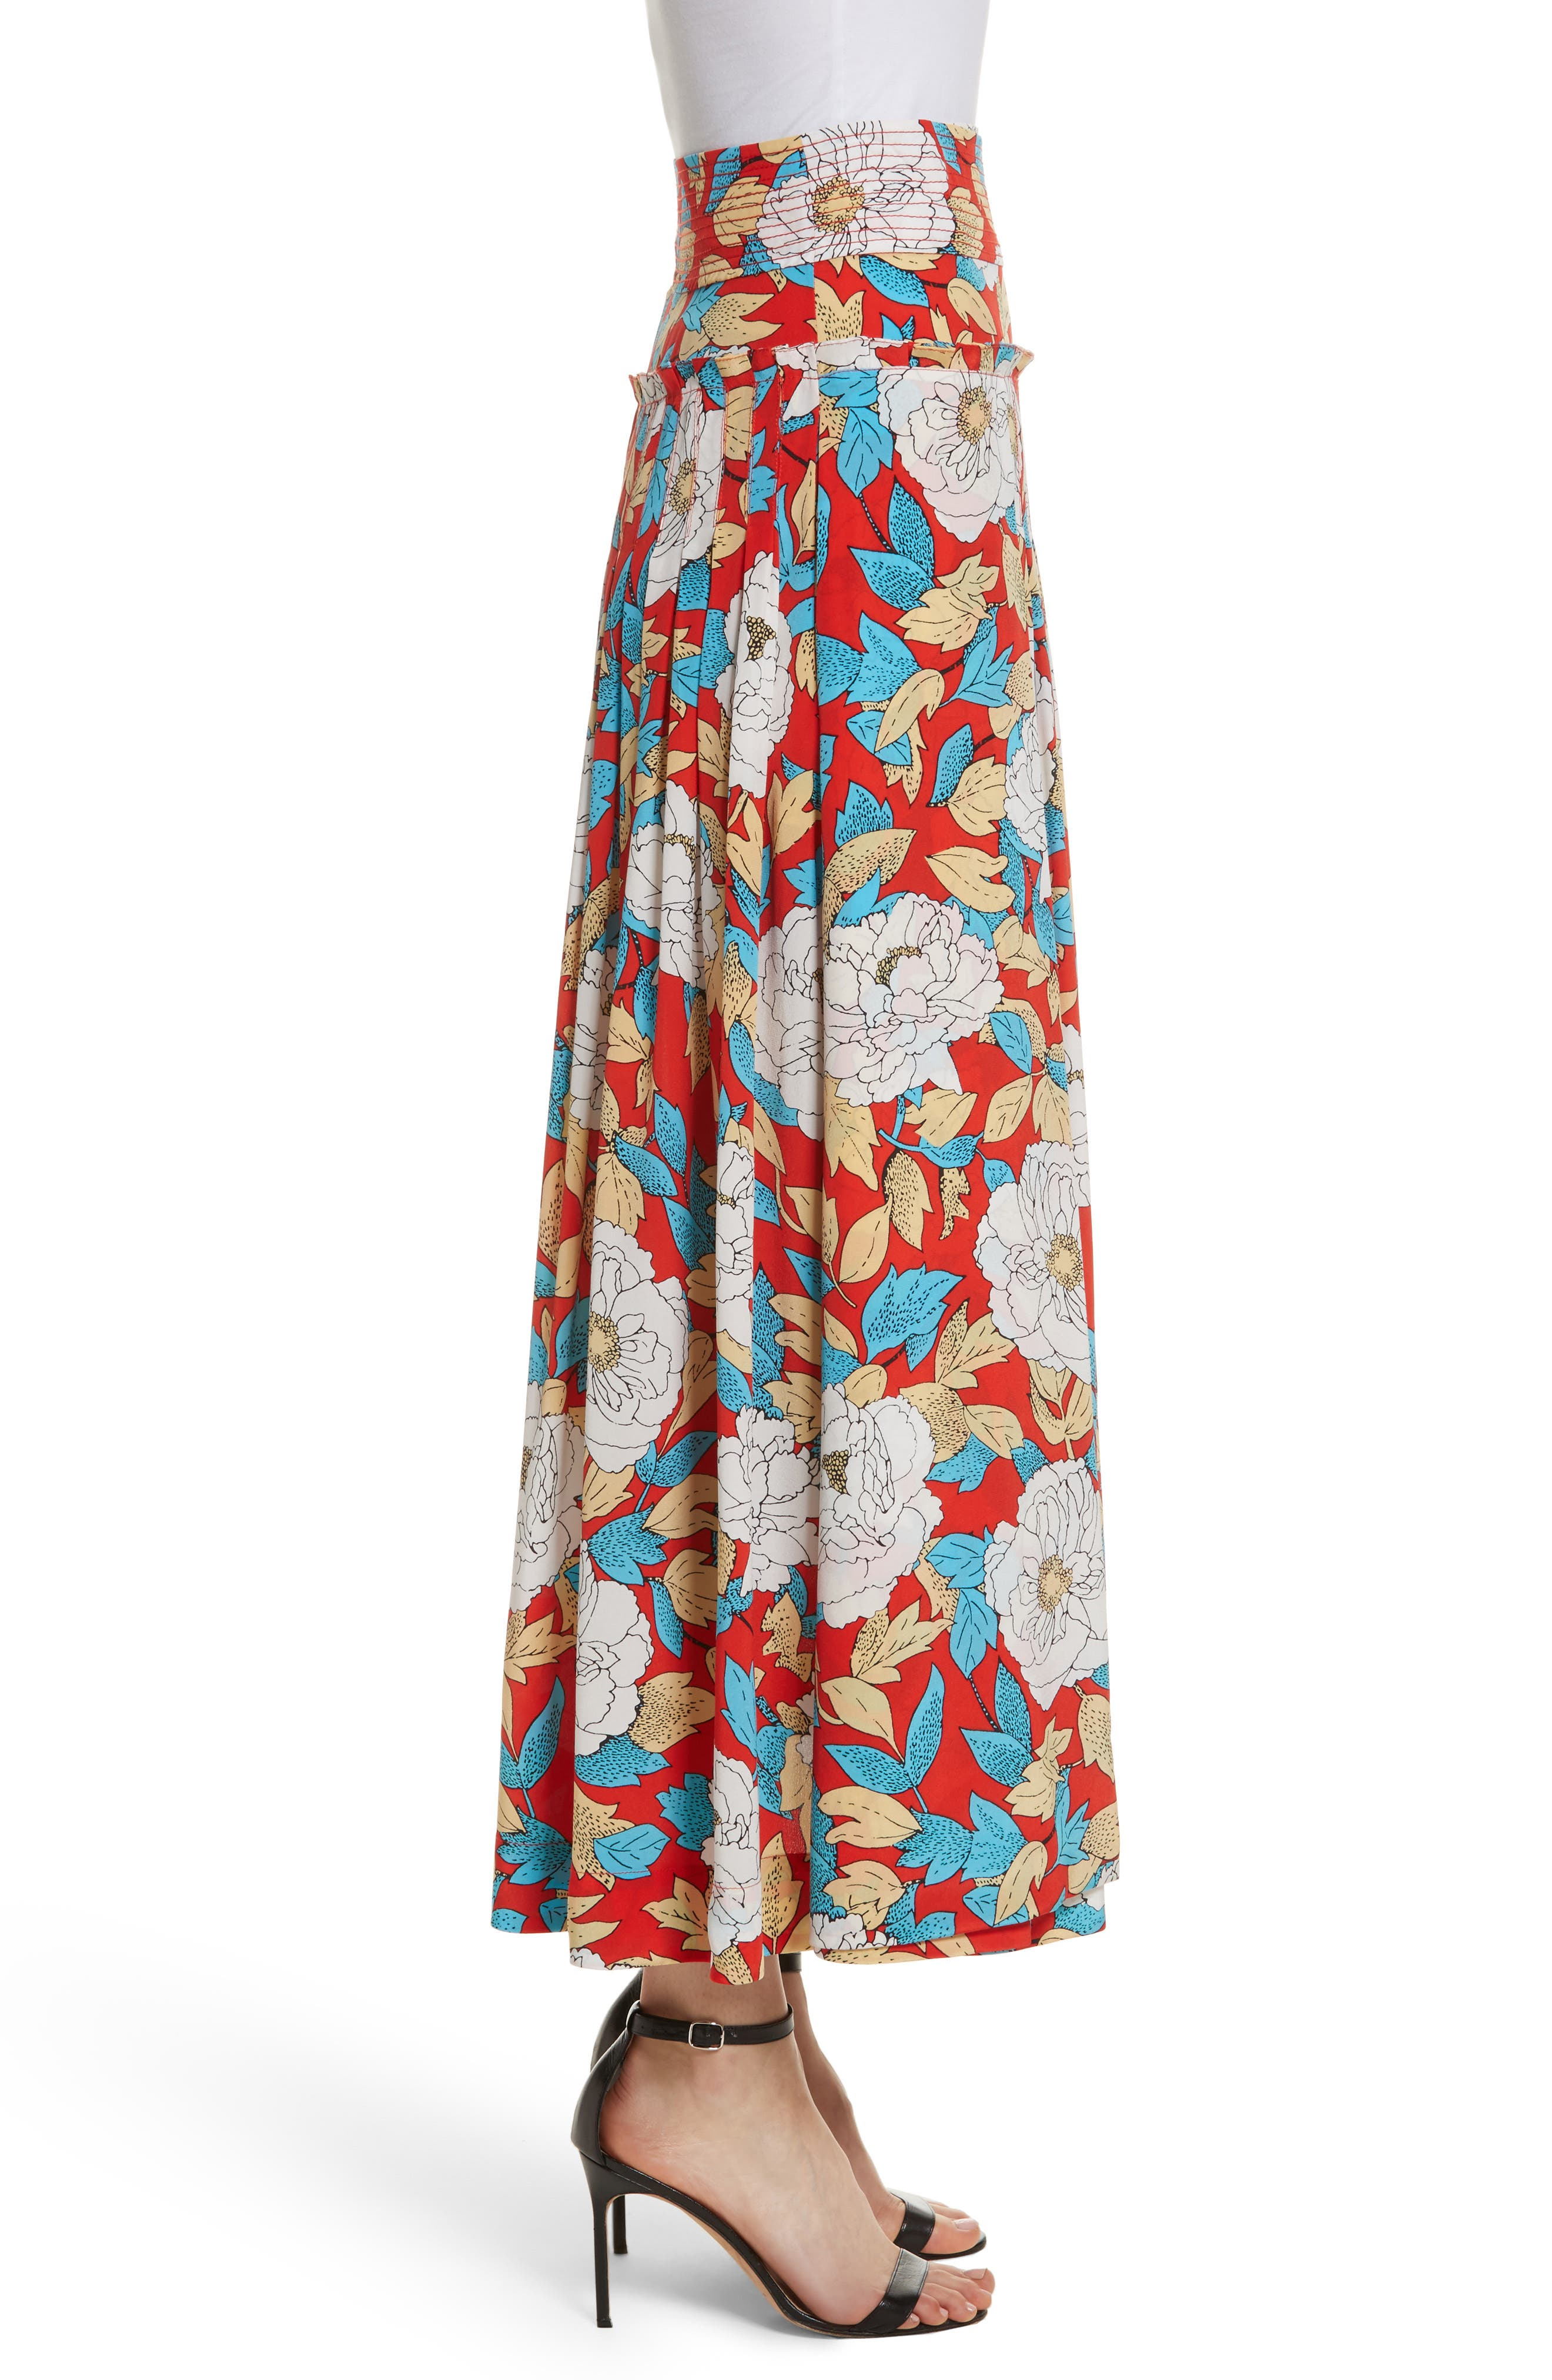 Diane von Furstenberg Floral Silk Midi Skirt,                             Alternate thumbnail 3, color,                             600